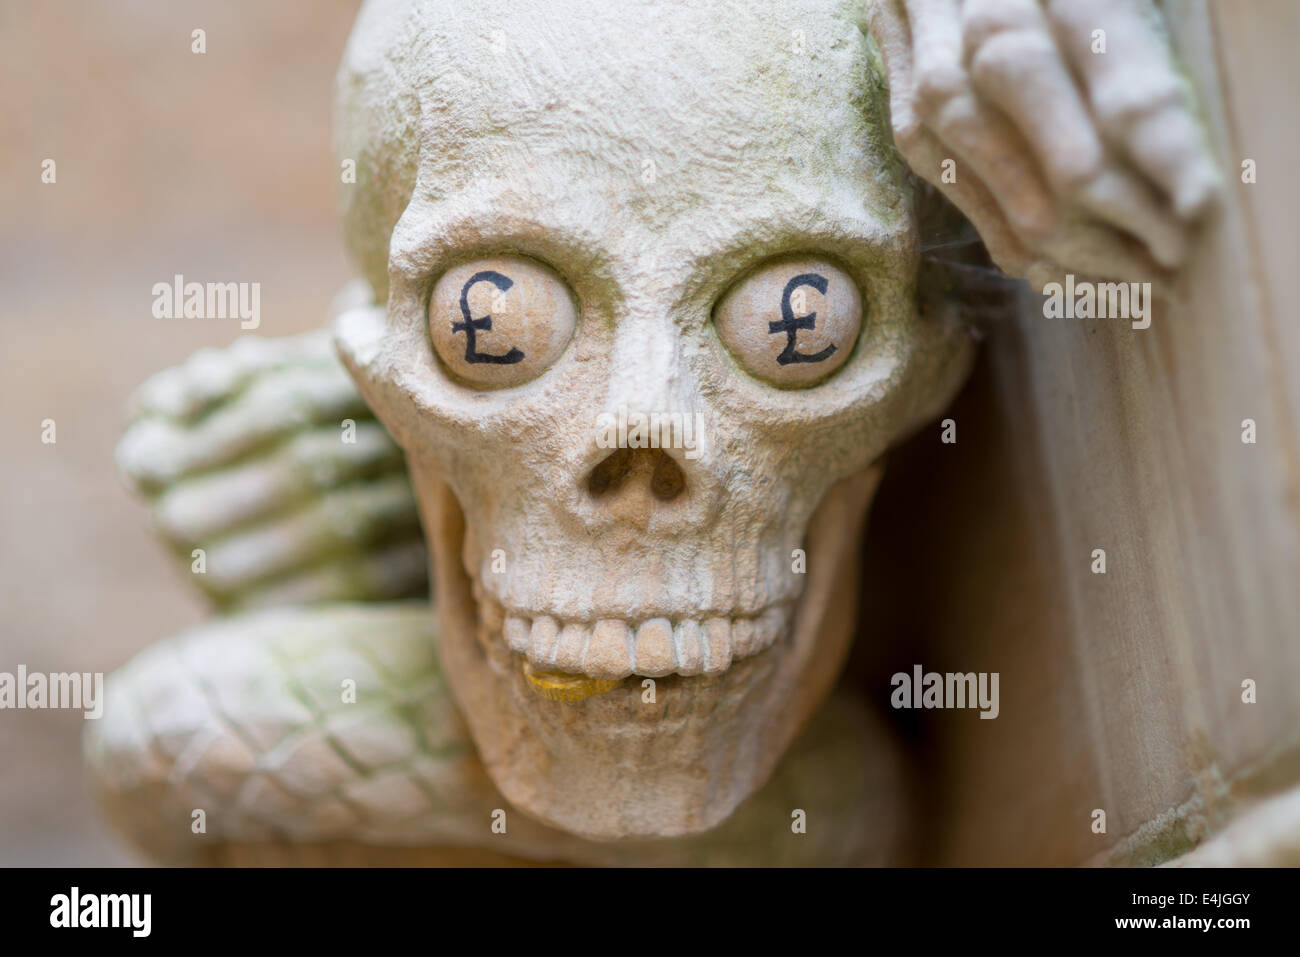 A gargoyle at Lincoln Cathedral with Pound Sings for eyes. - Stock Image